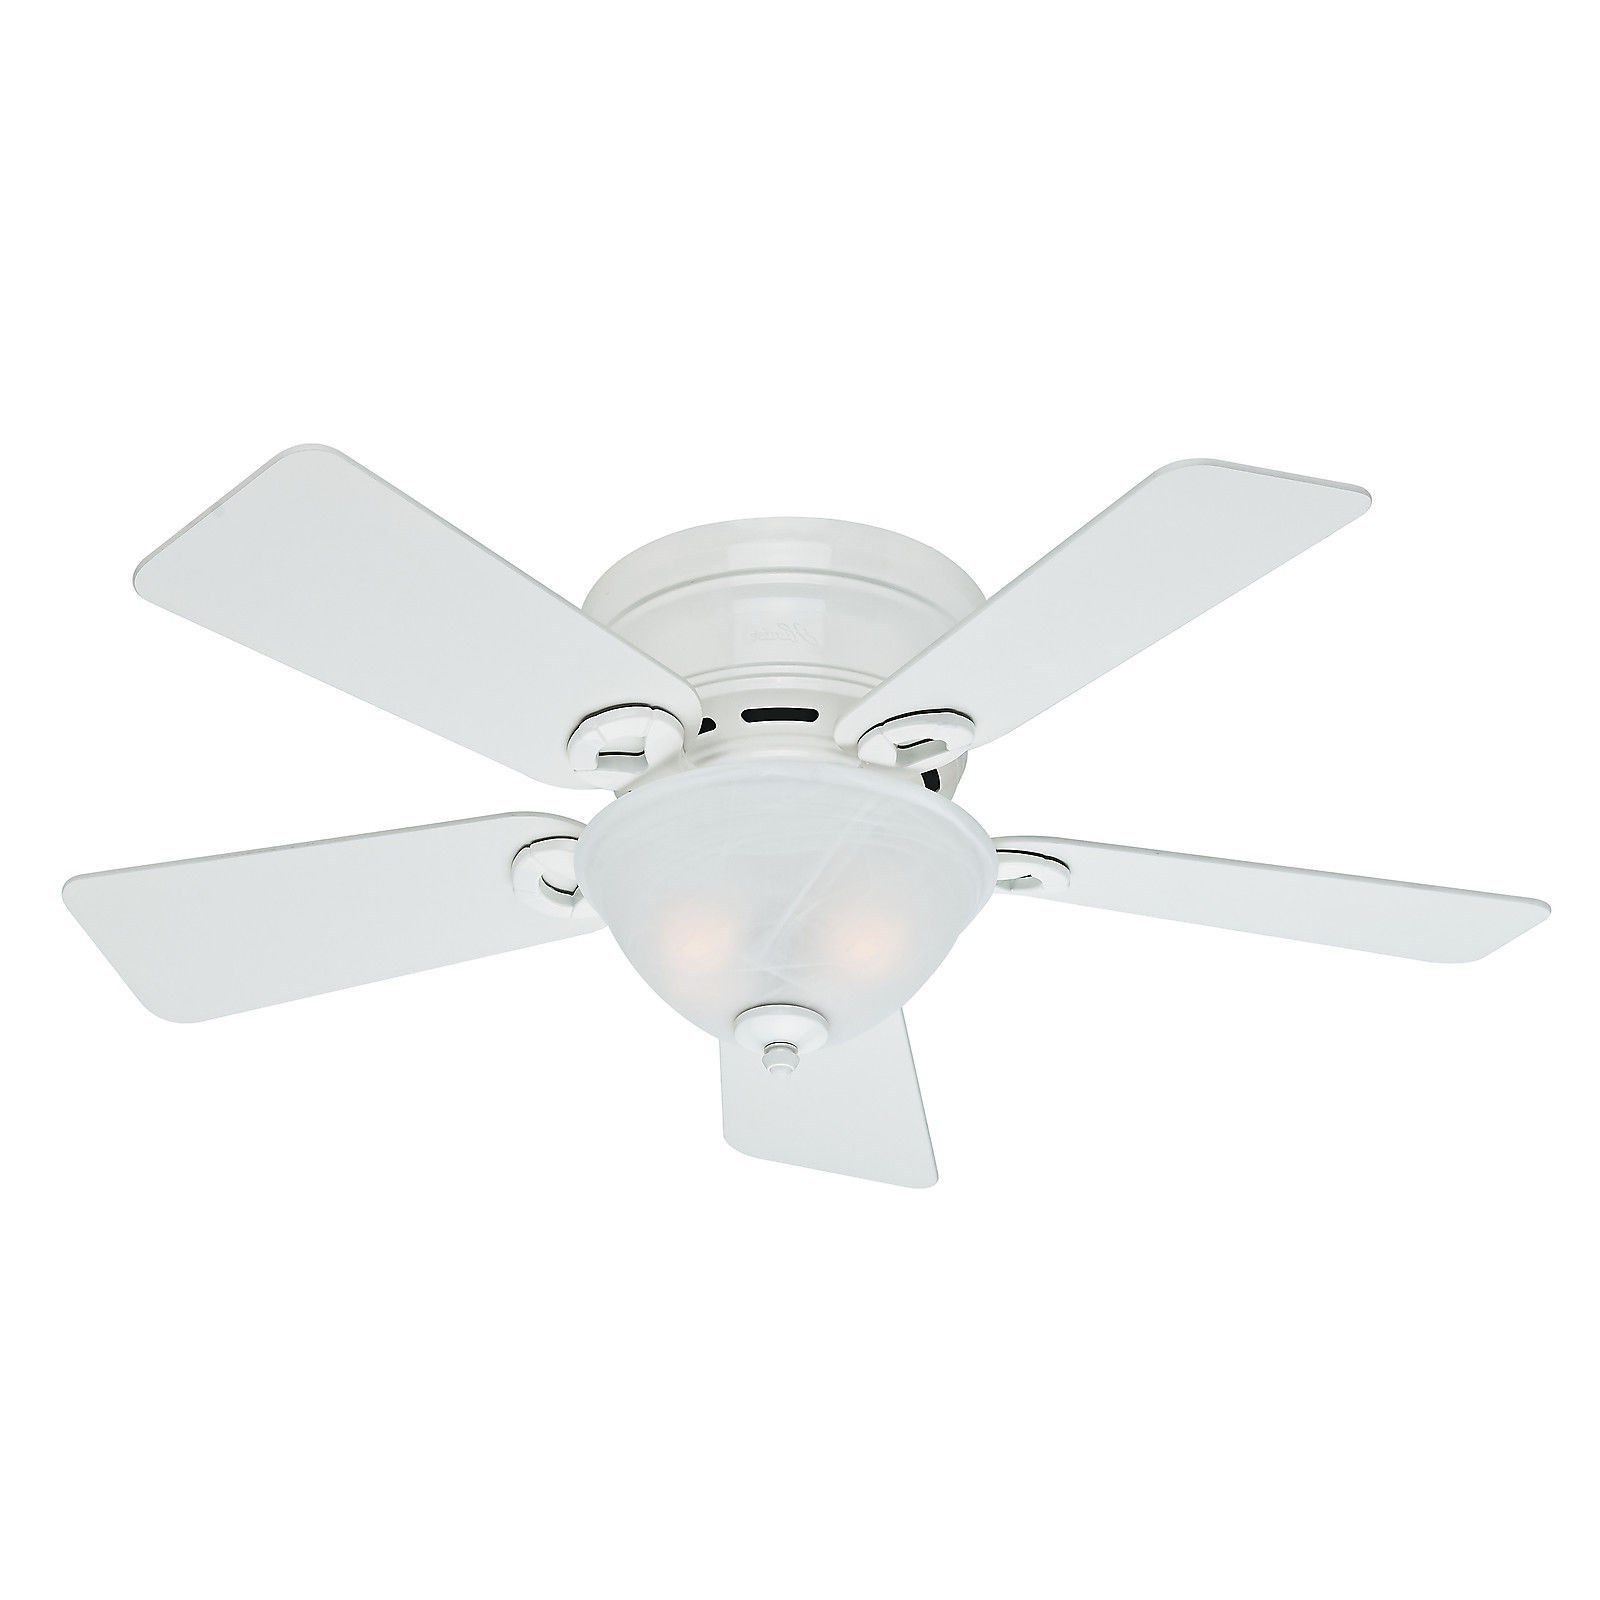 Famous Low Profile Outdoor Ceiling Fans Low Profile Outdoor Ceiling Light Intended For 48 Inch Outdoor Ceiling Fans With Light (View 8 of 20)